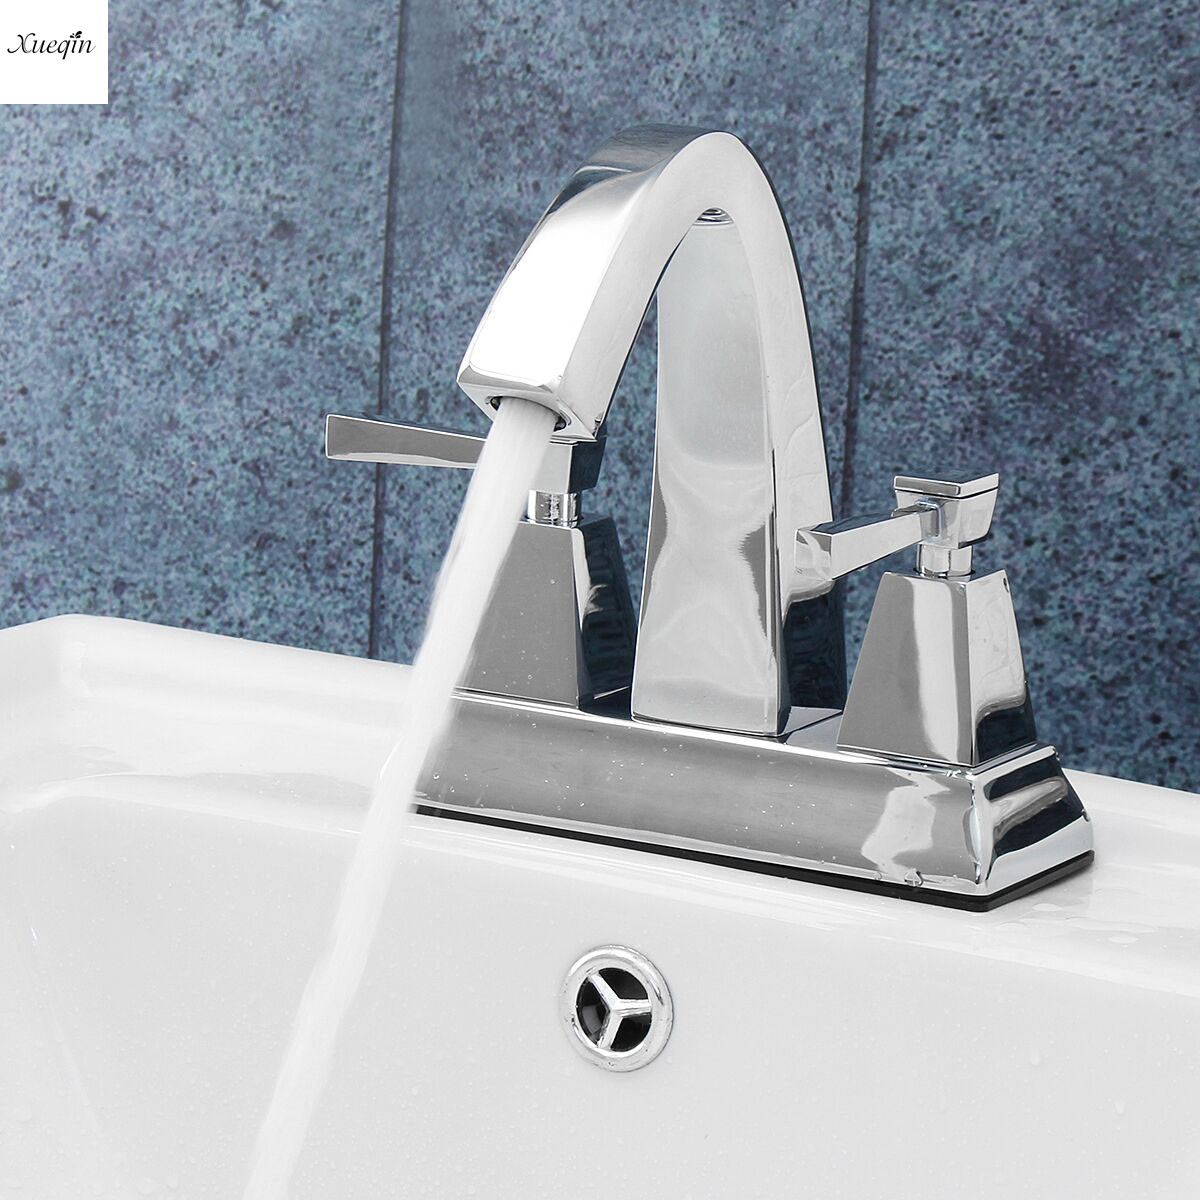 Luxury Brass Bathroom Basin Faucet Double Handle Two Holes Water Tap Chrome Deck Mounted Hot and Cold Water Sink Mixer Tap стоимость